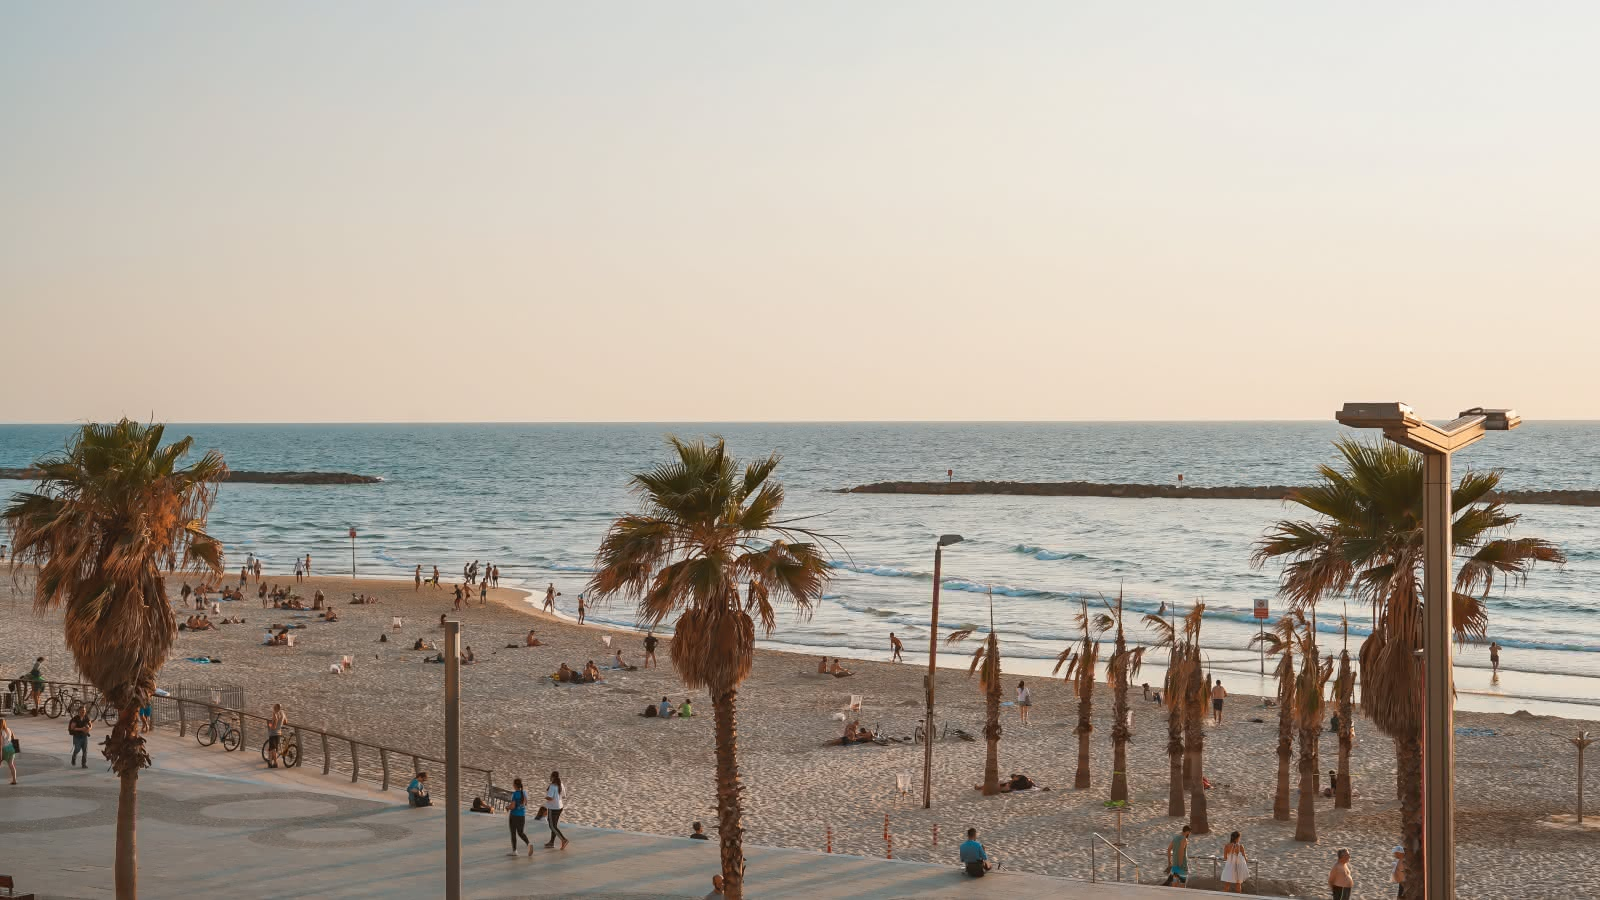 Beach and palm trees in Tel aviv